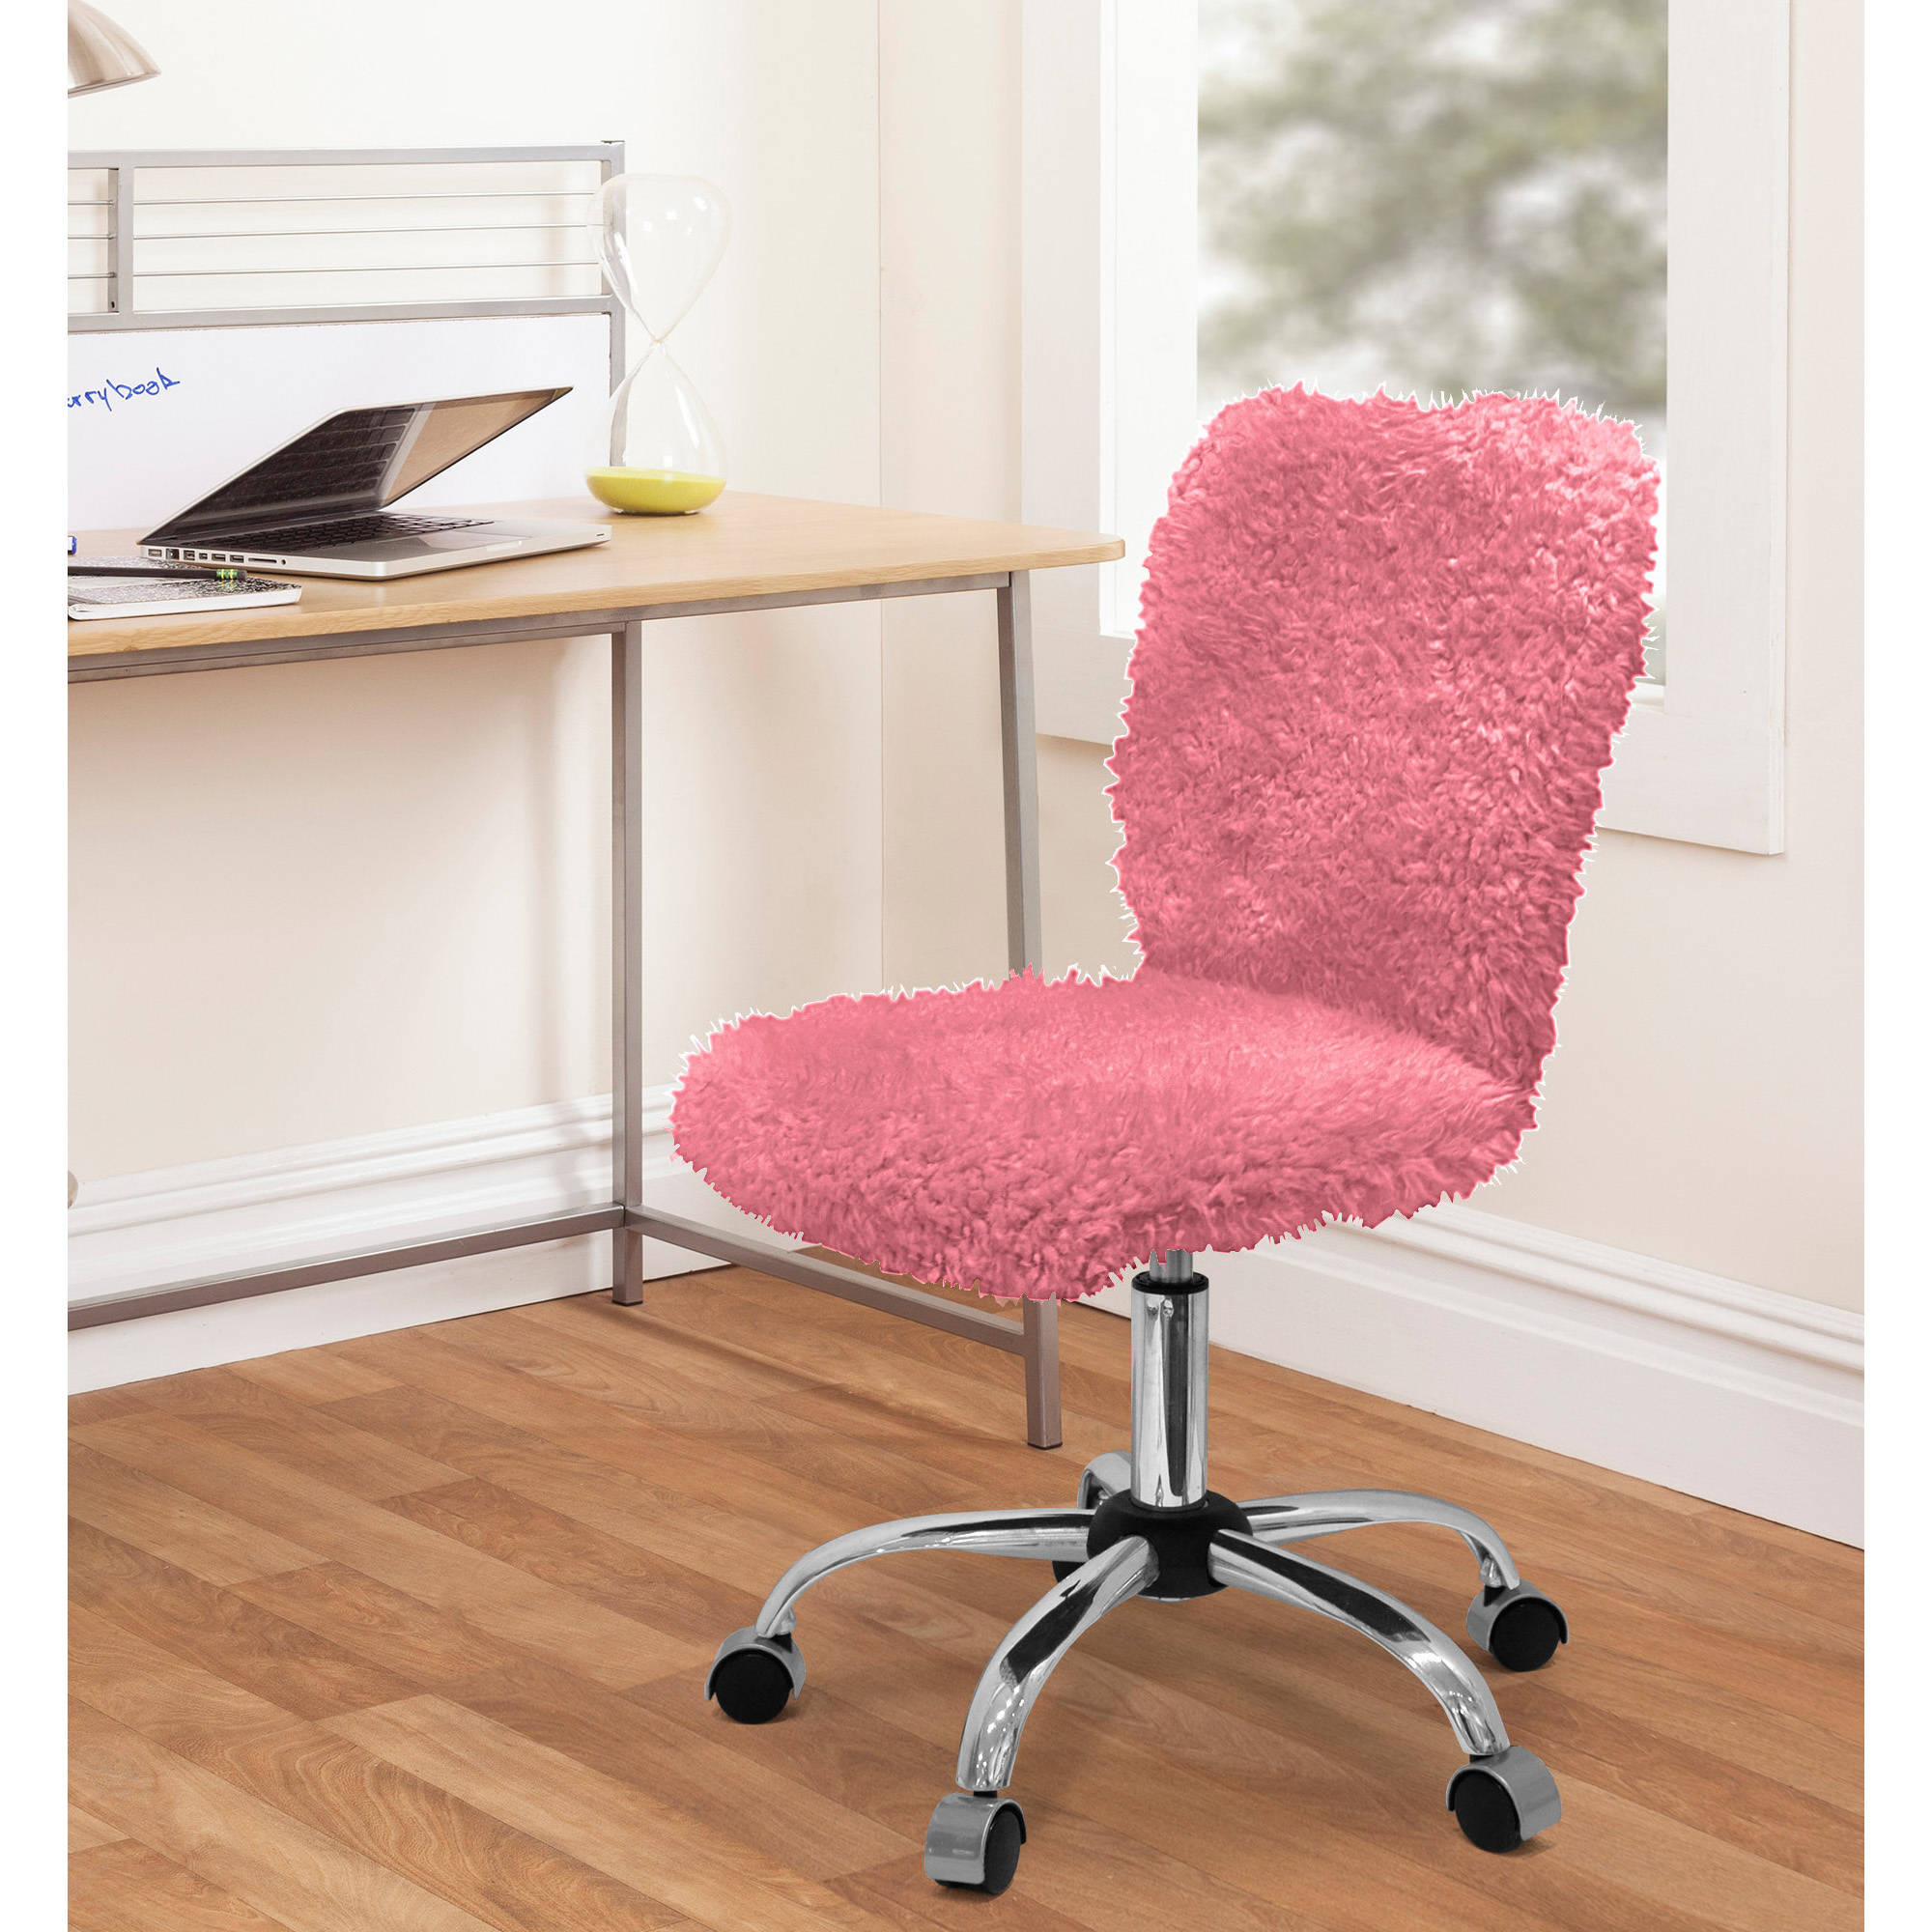 Teen Room Chairs teens' room - every day low prices | walmart